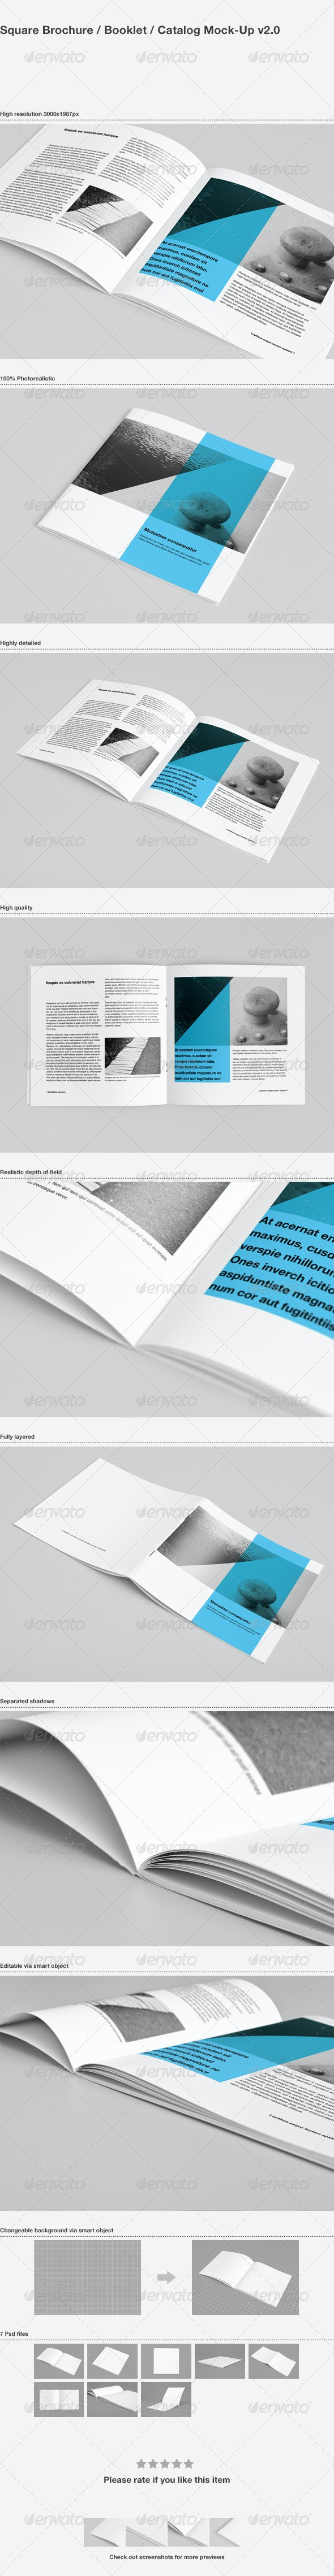 Square Brochure / Booklet / Catalog Mock-Up - Brochures Print